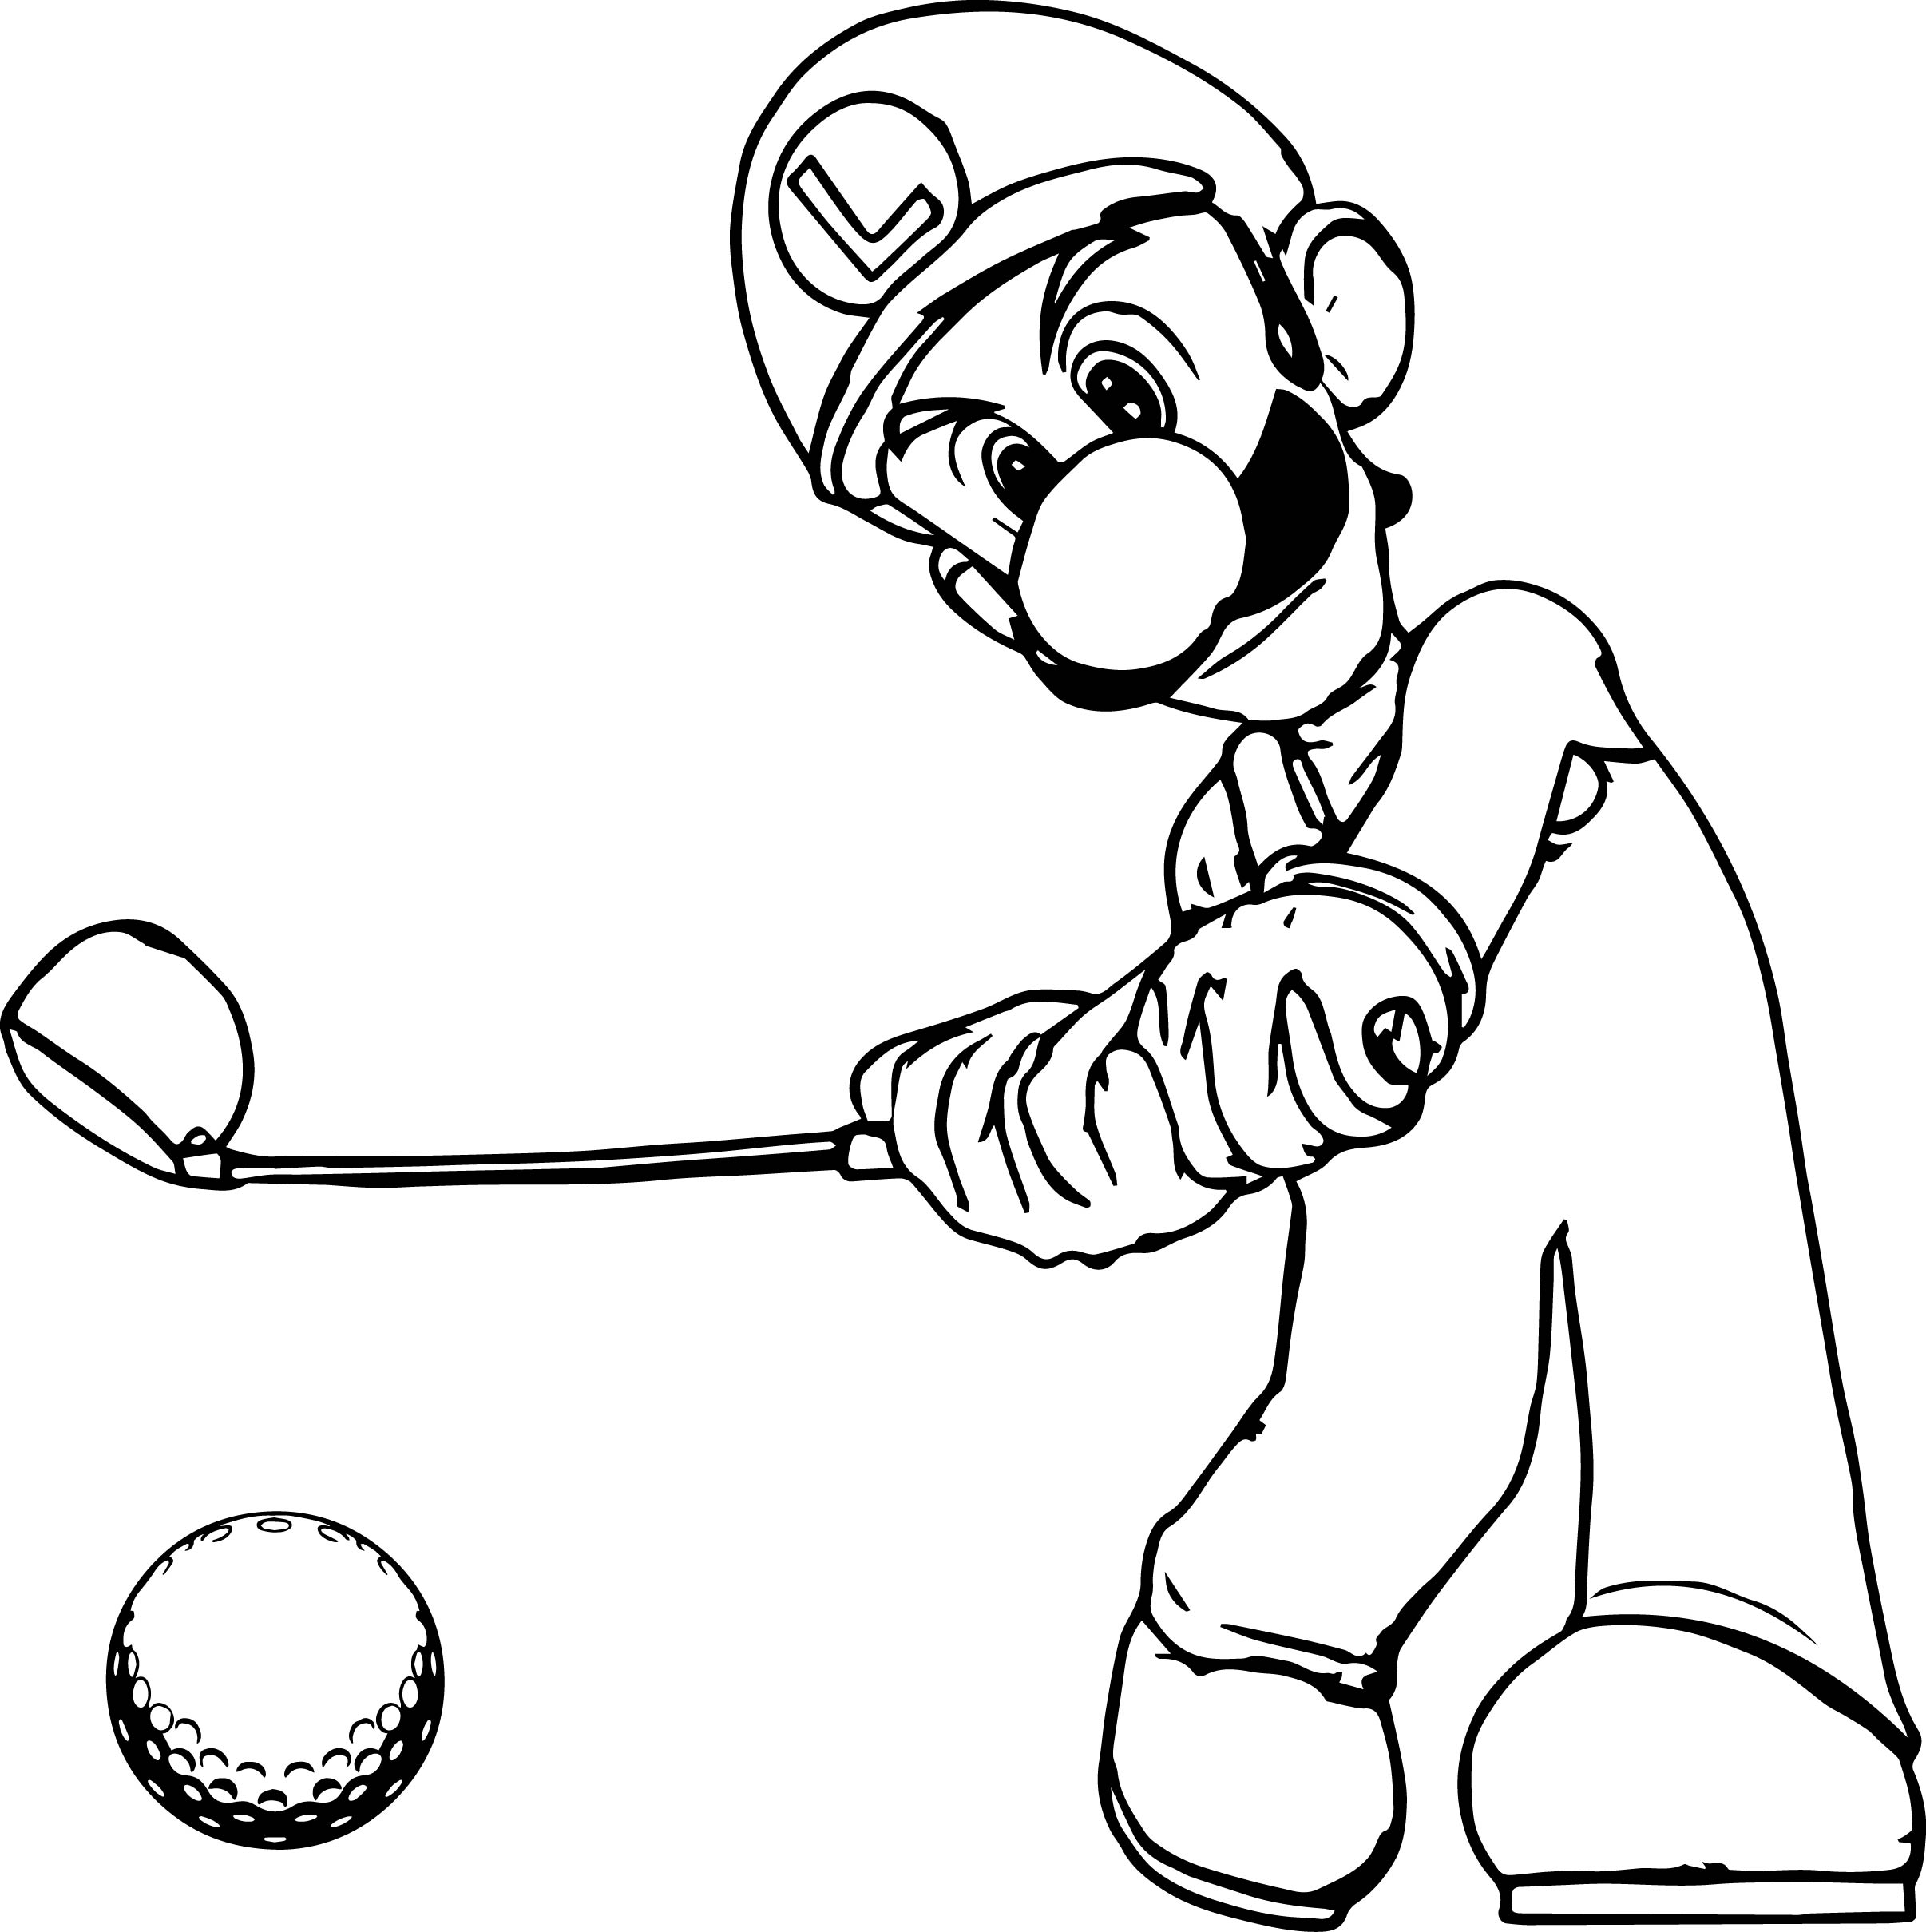 Super Mario Luigi Golf Coloring Page